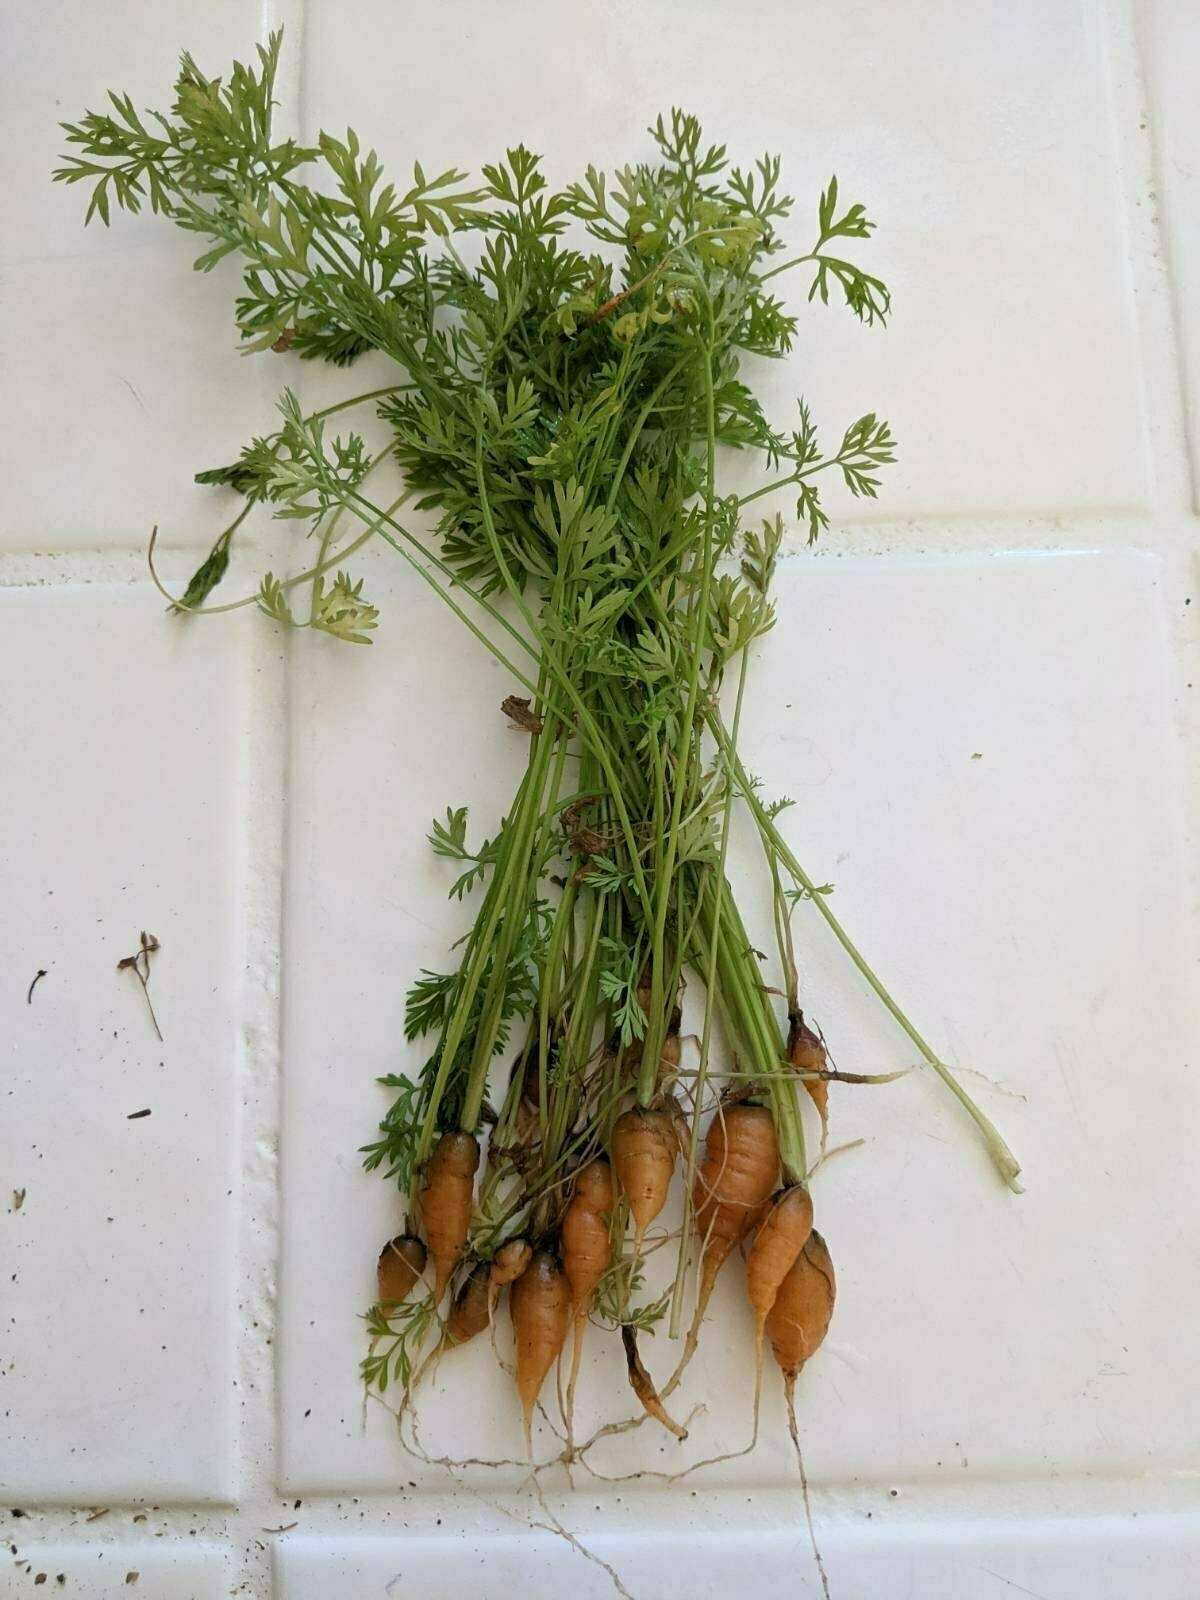 A group of young carrots sitting on a white tiled surface.